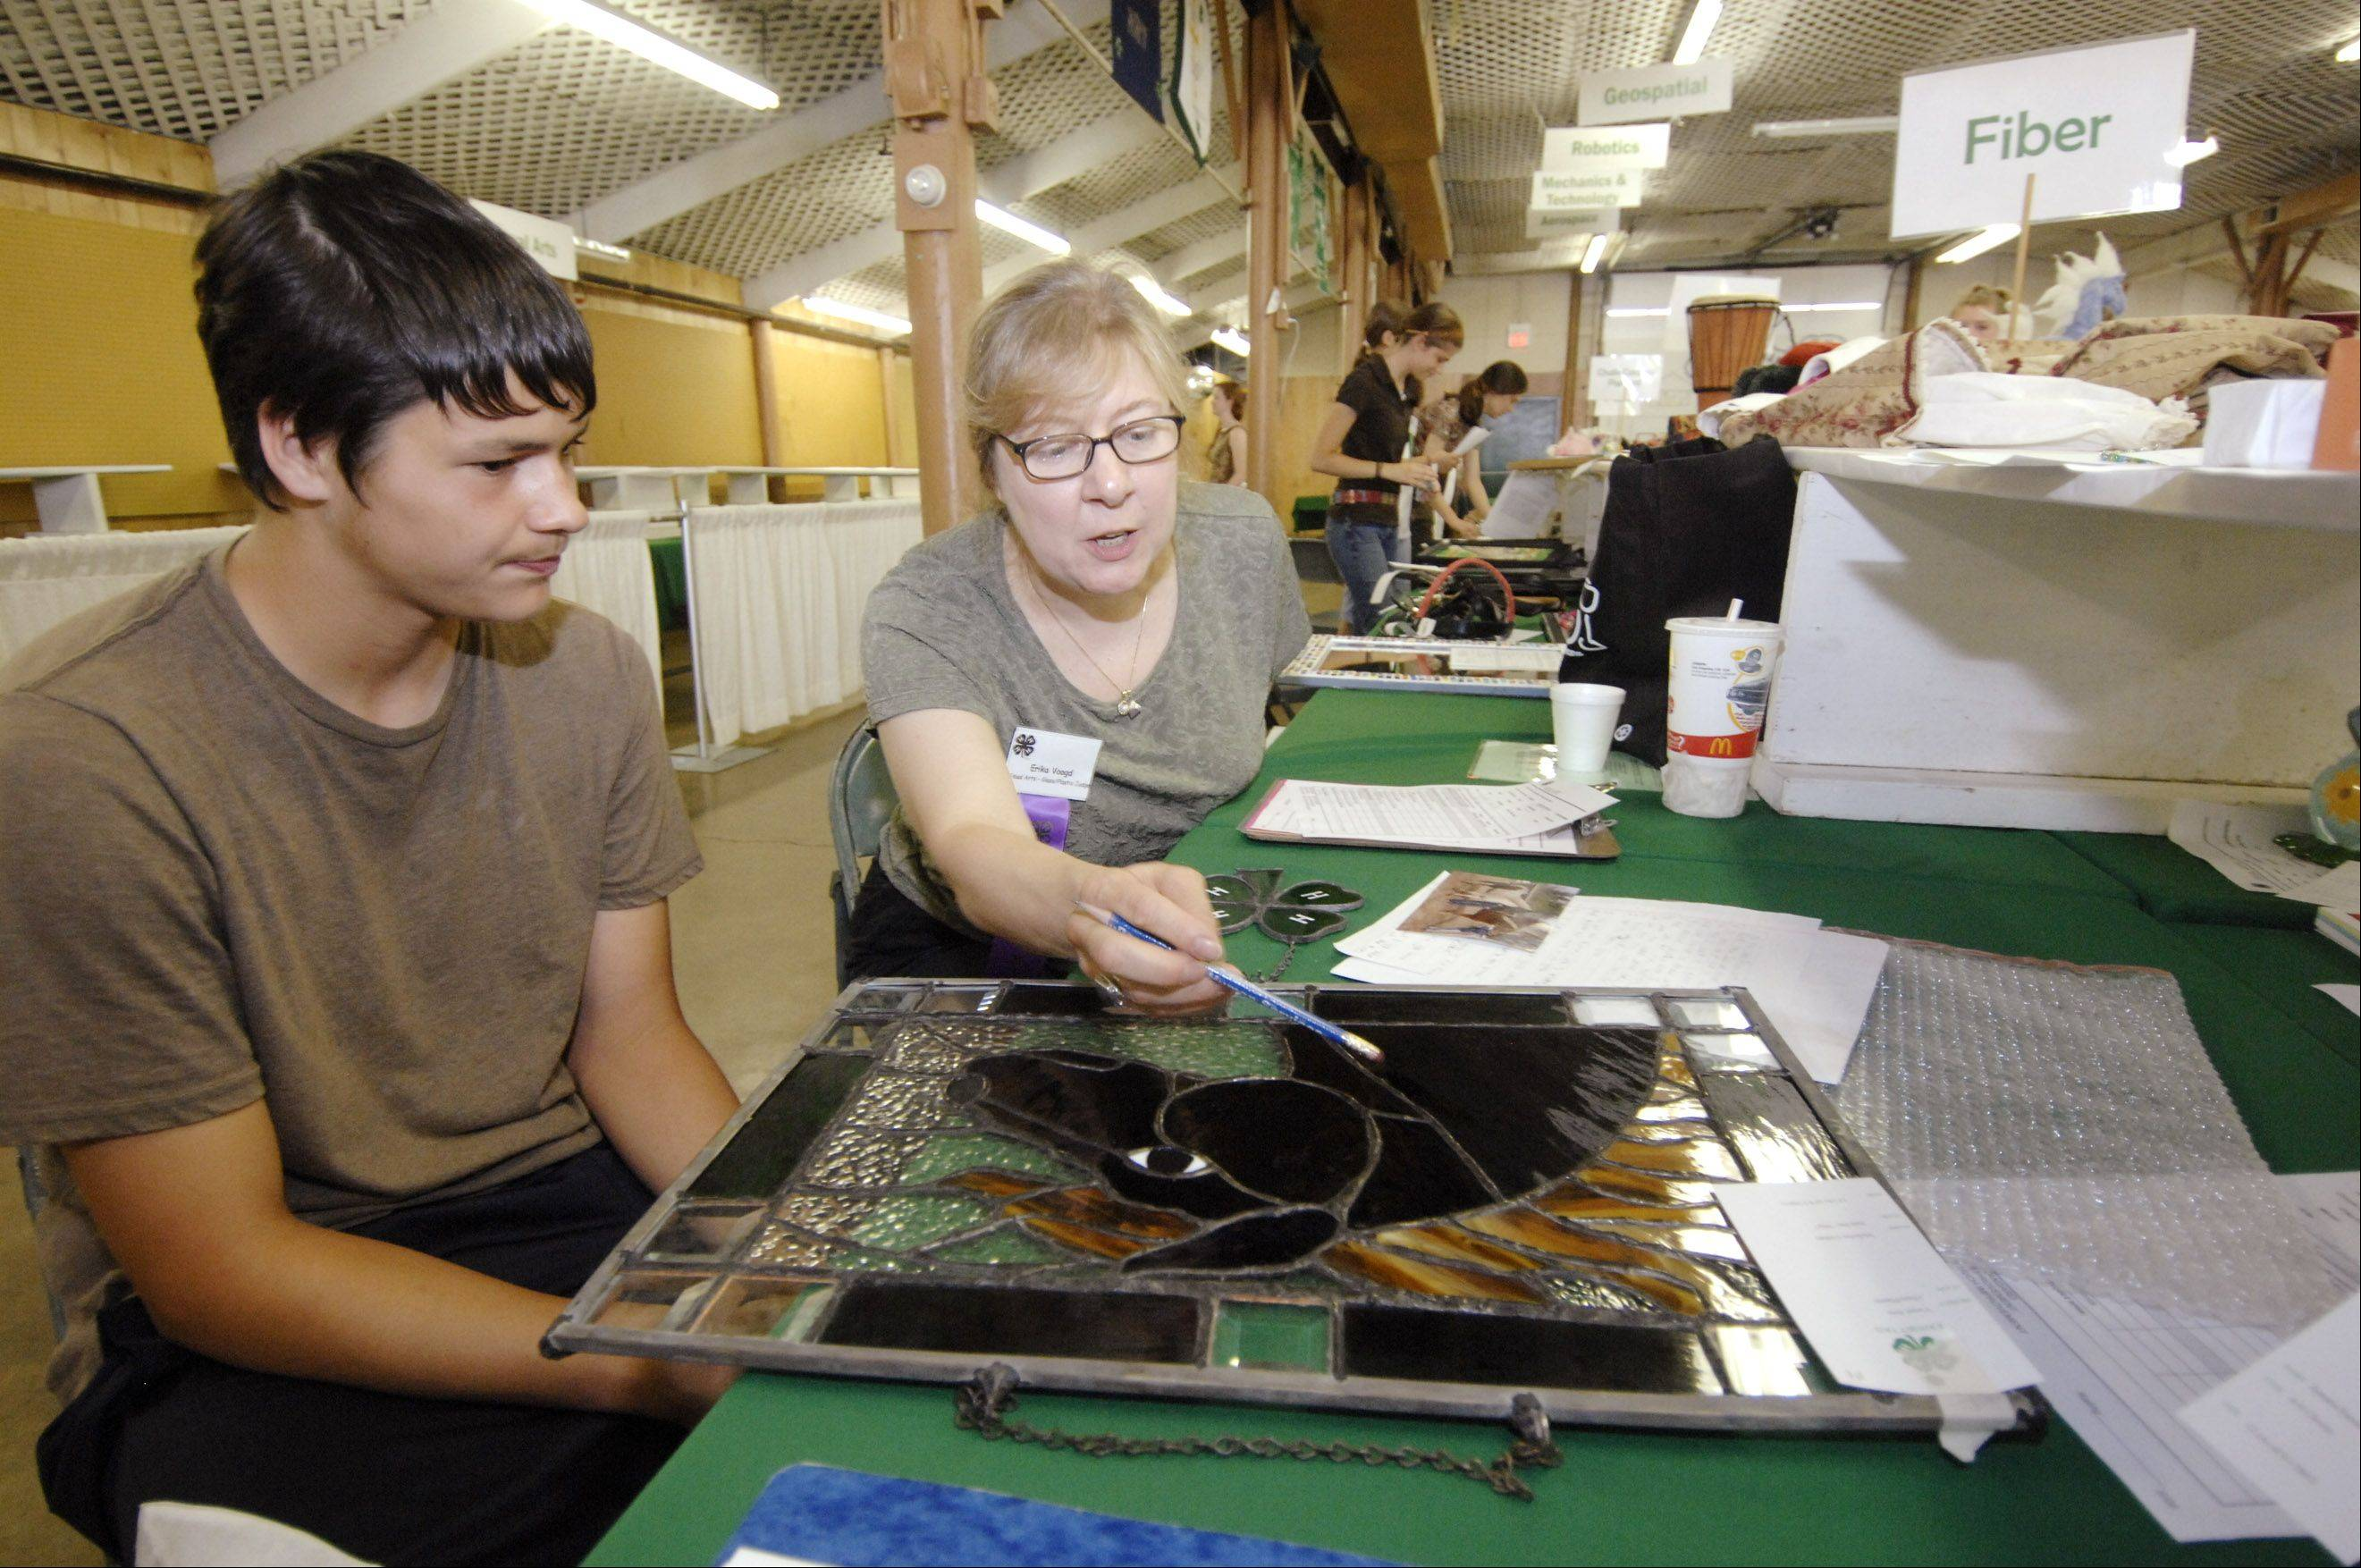 There are roughly 300 members of DuPage County 4-H groups participating in this year's county fair. Competitors may submit entries in areas ranging from woodworking to stained glass to livestock displays.